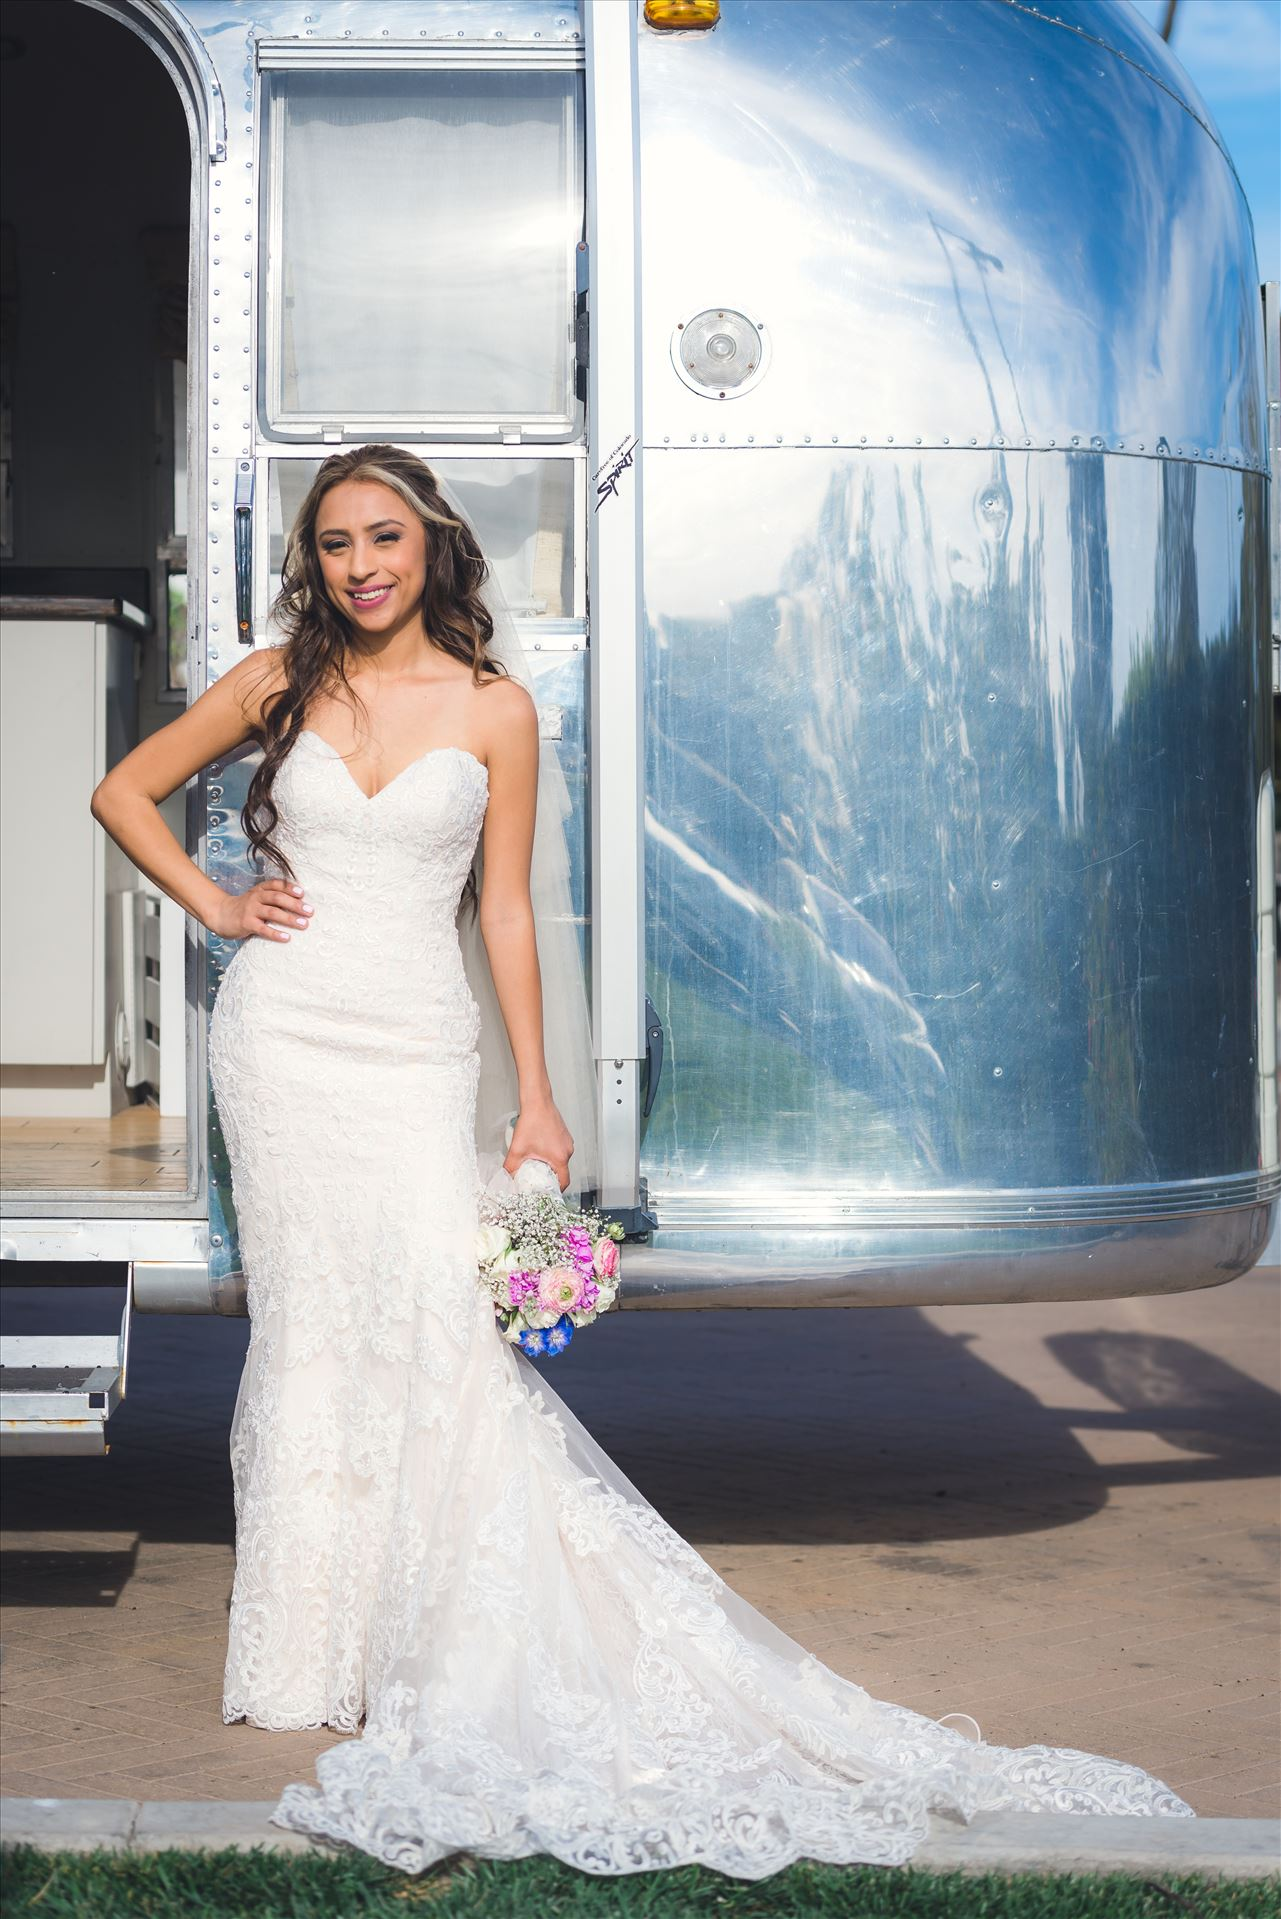 Ana and Juan 48 - Wedding photography at the Kimpton Goodland Hotel in Santa Barbara California by Mirror's Edge Photography.  Retro Chic Bride by Airstream by Sarah Williams